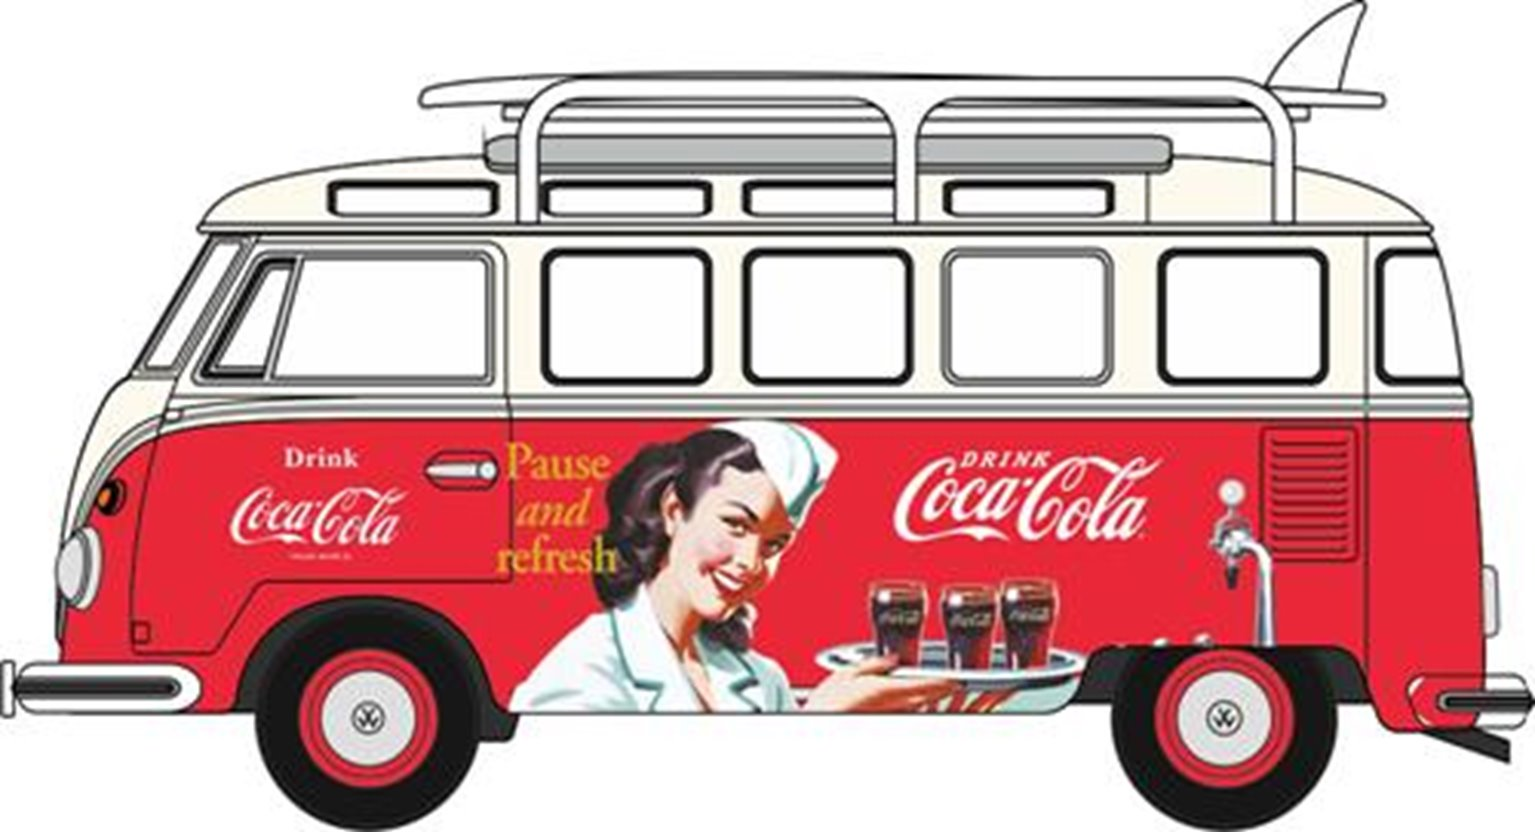 VW T1 Bus and Surfboards Coca Cola